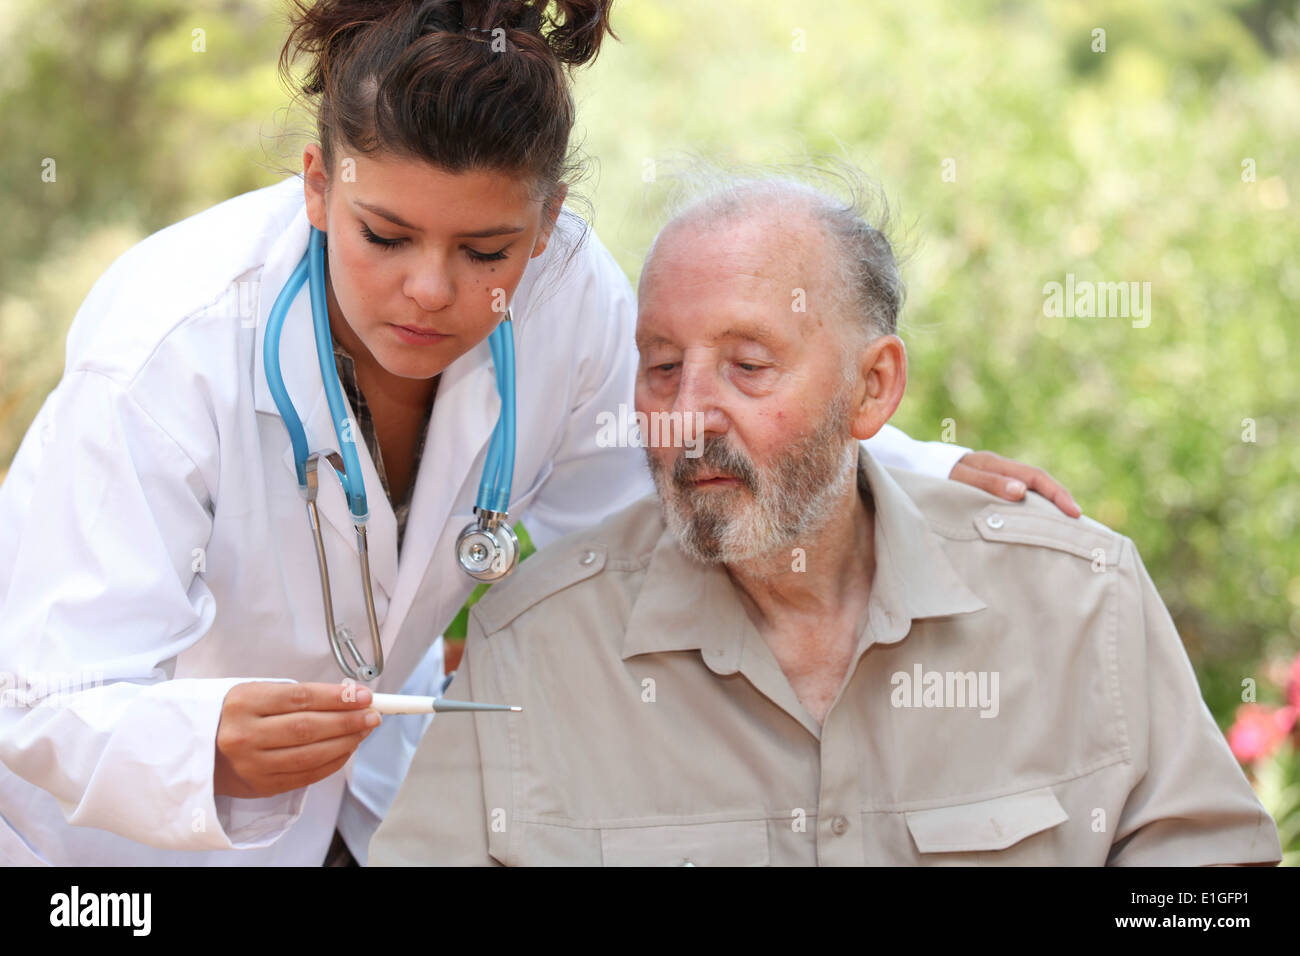 dr reading thermometer of senior man - Stock Image